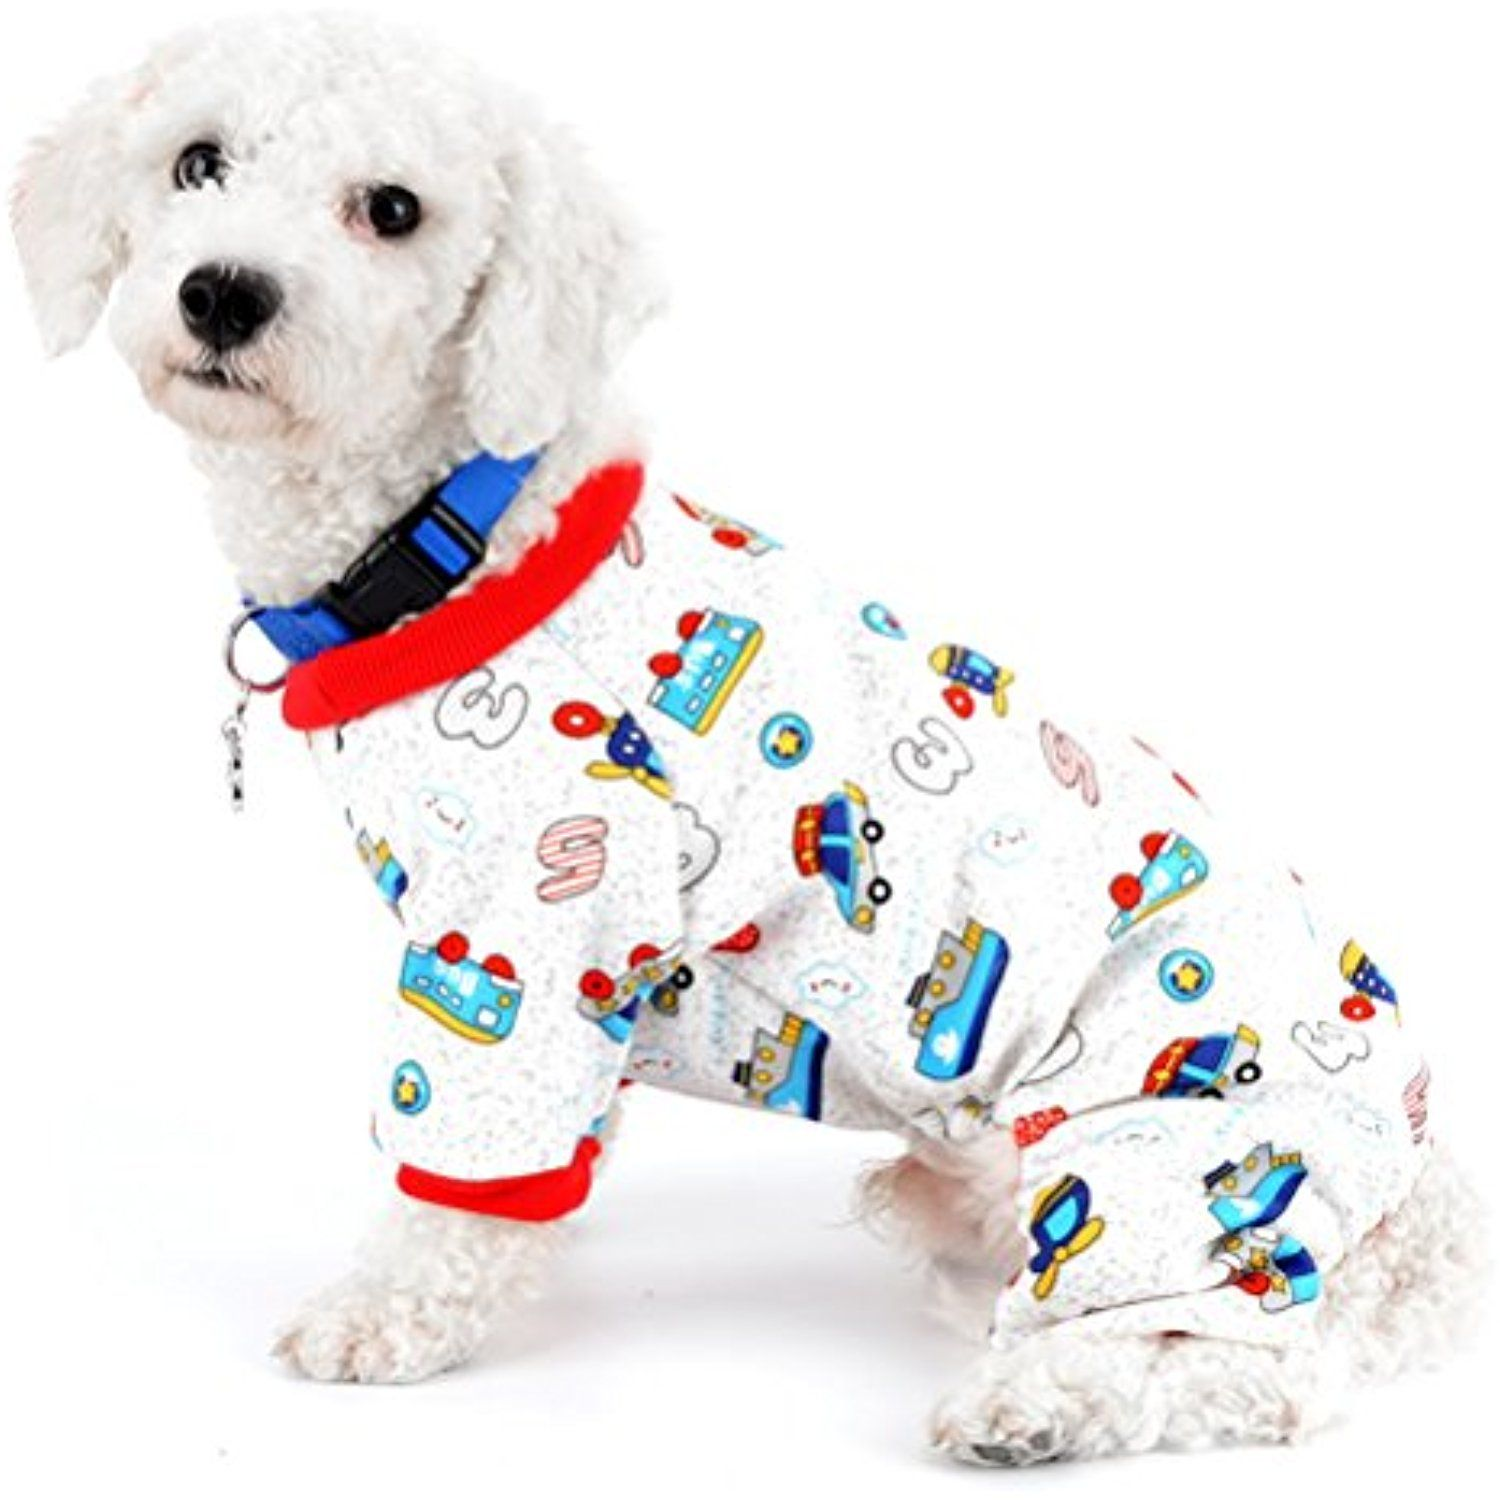 ZUNEA Car Print Adorable Padded Dog Pajamas Jumpsuit Cotton Fleece Warm Pet  Puppy Pjs Indoor Outfits Chihuahua Yorkie Clothes Apparel XL     Check out  this ... bca5931b1